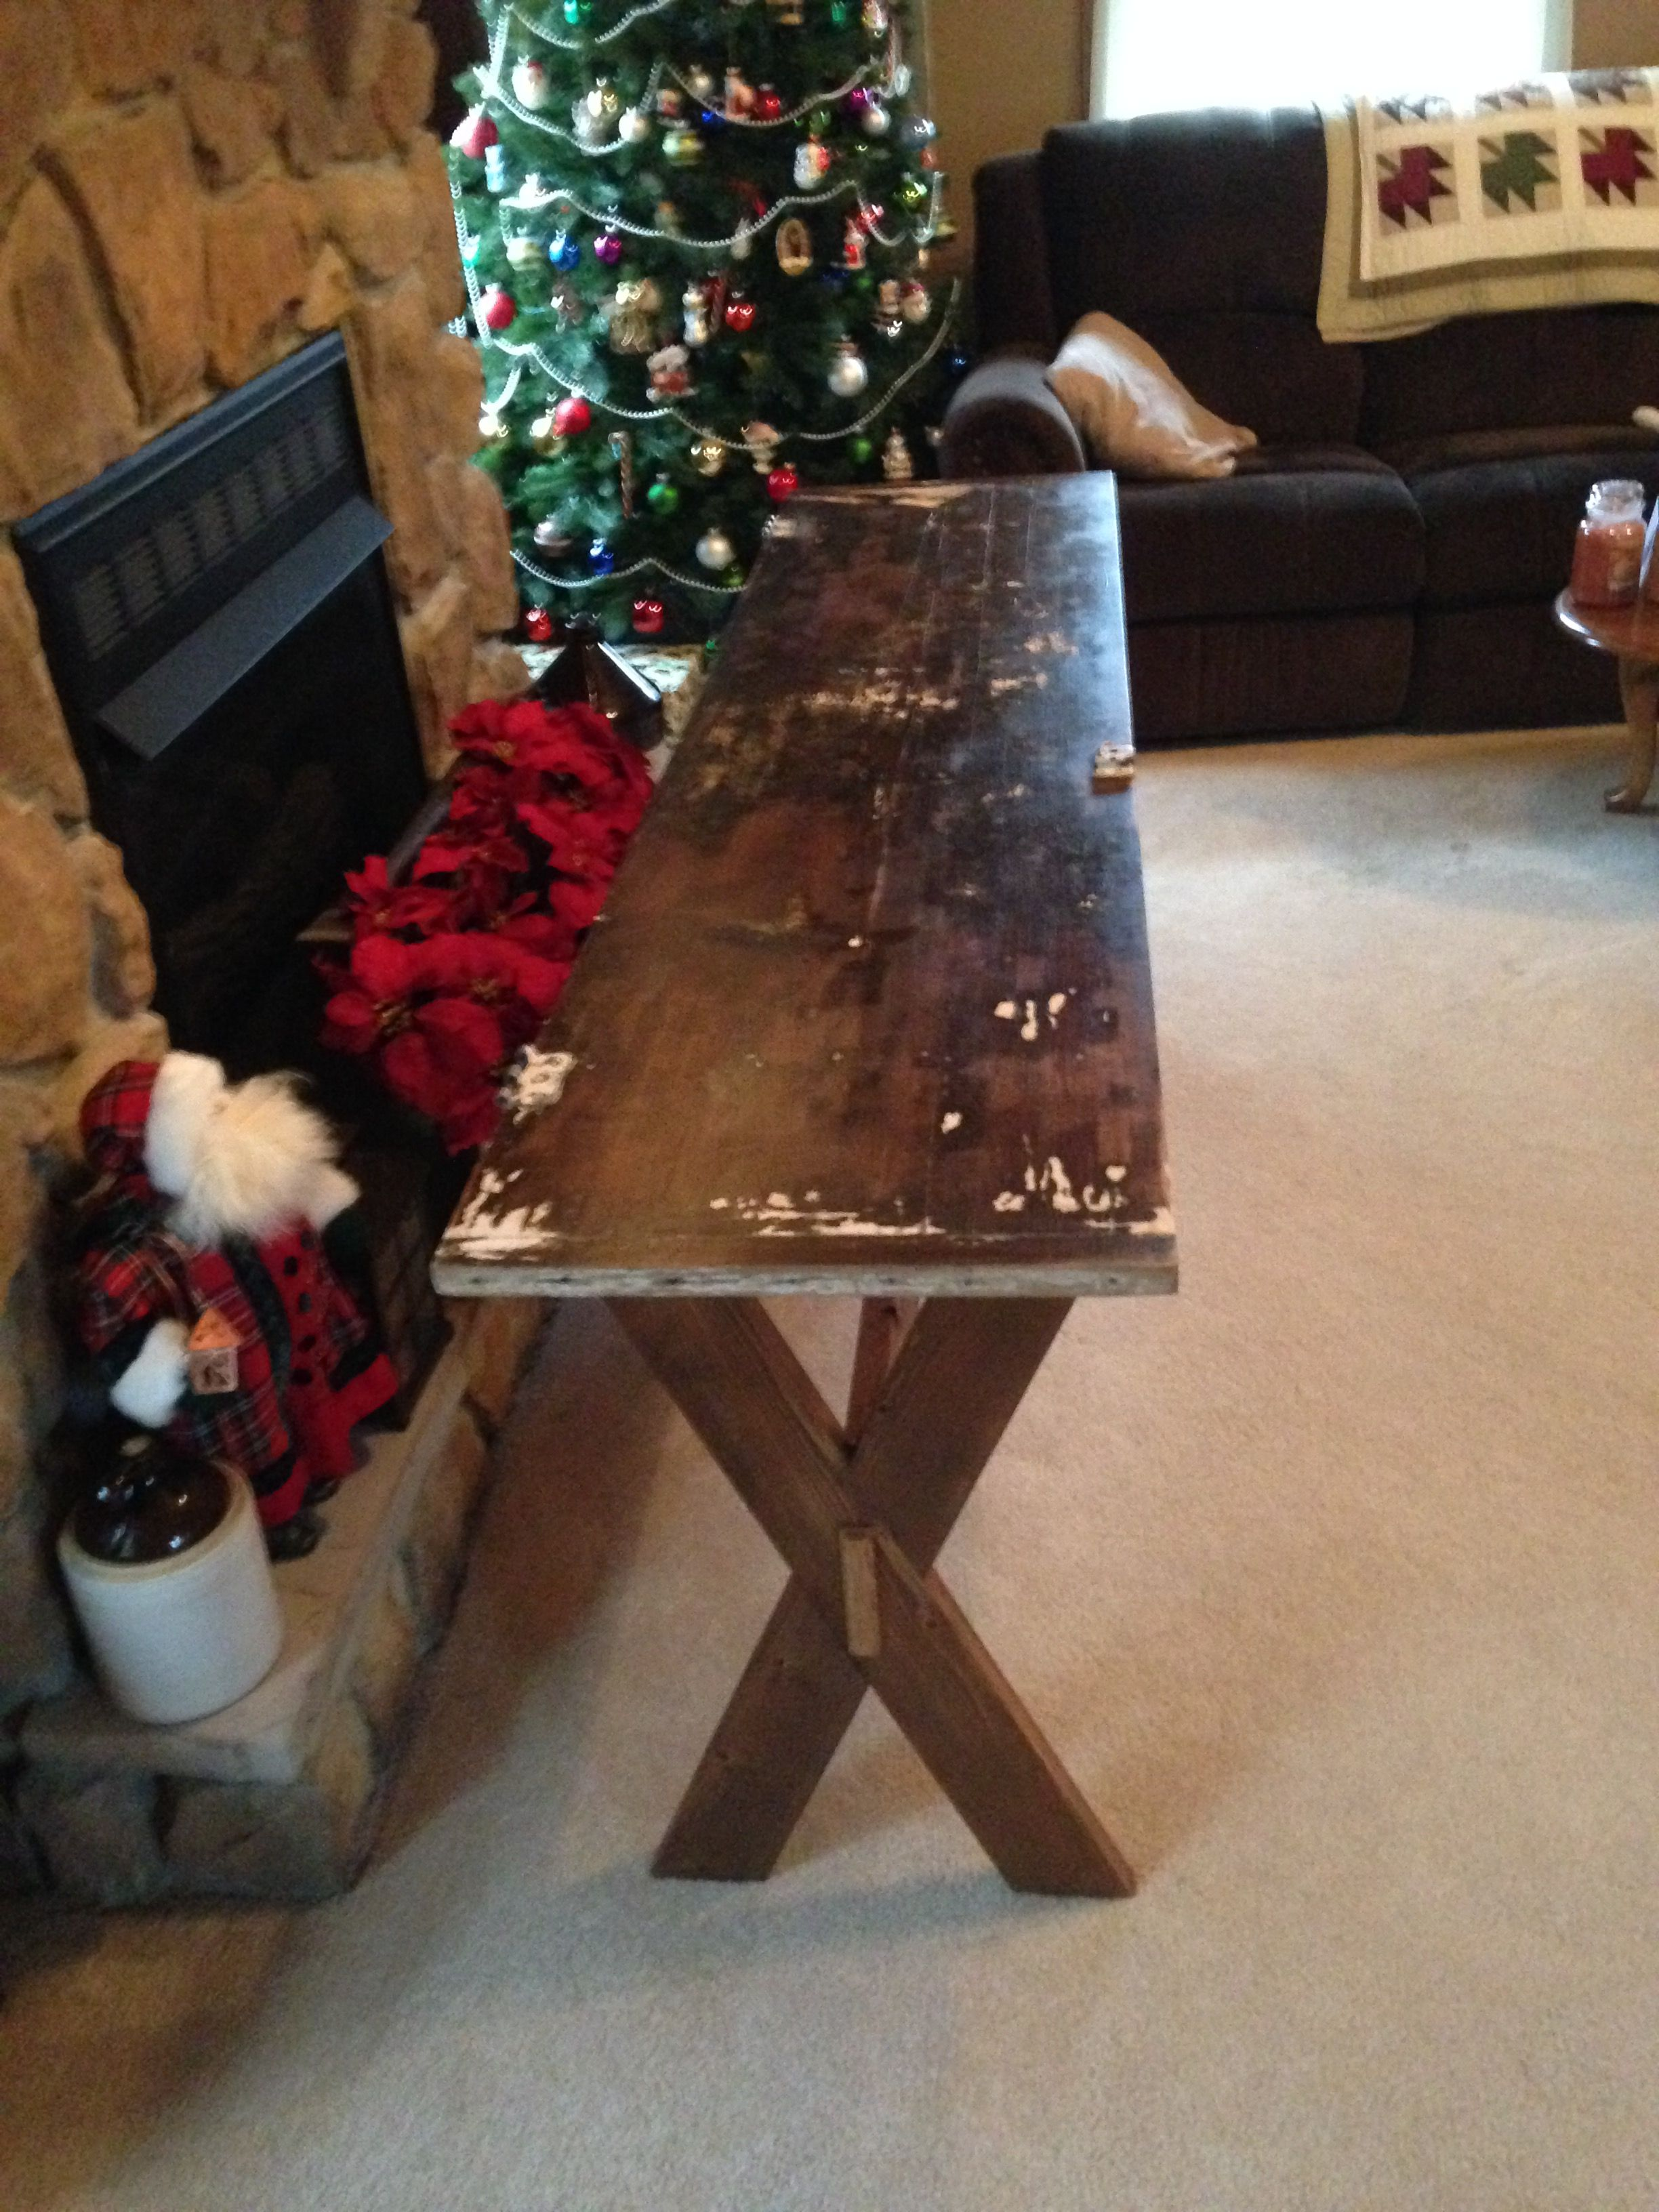 This Sofa Table Hallway Table Was Made From An Old Vintage Door I Left The Hardware On To Give It Some Character Vintage Door Hallway Table Sofa Table